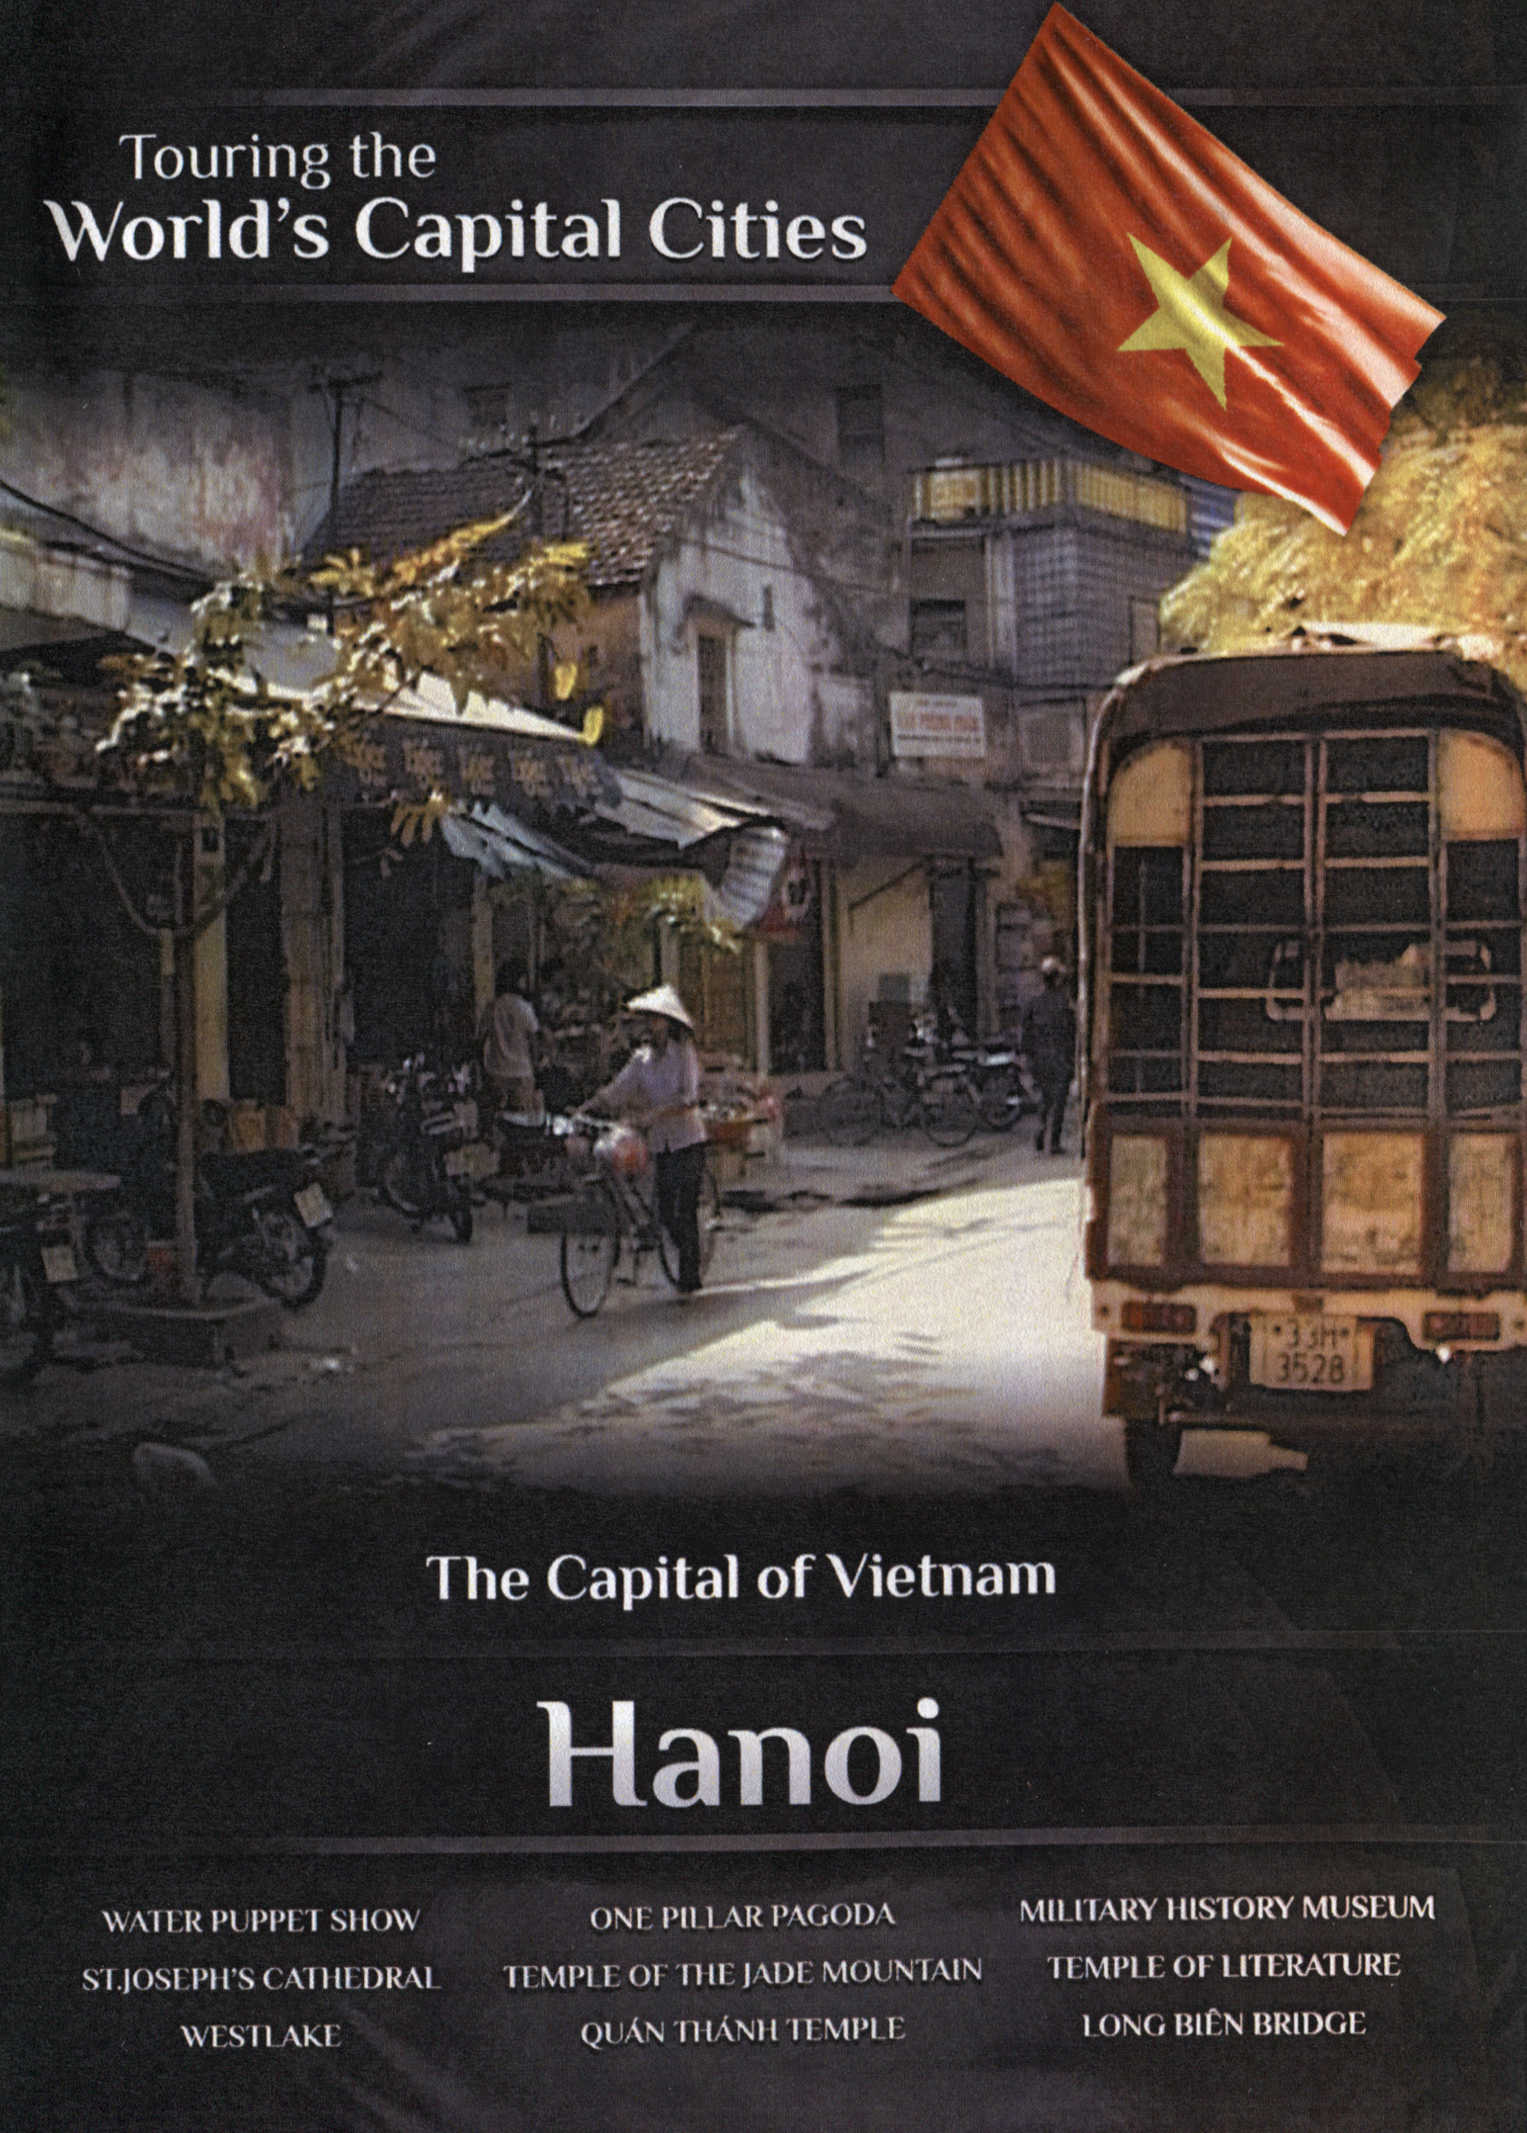 Touring the World's Capital Cities: The Capital of Vietnam - Hanoi